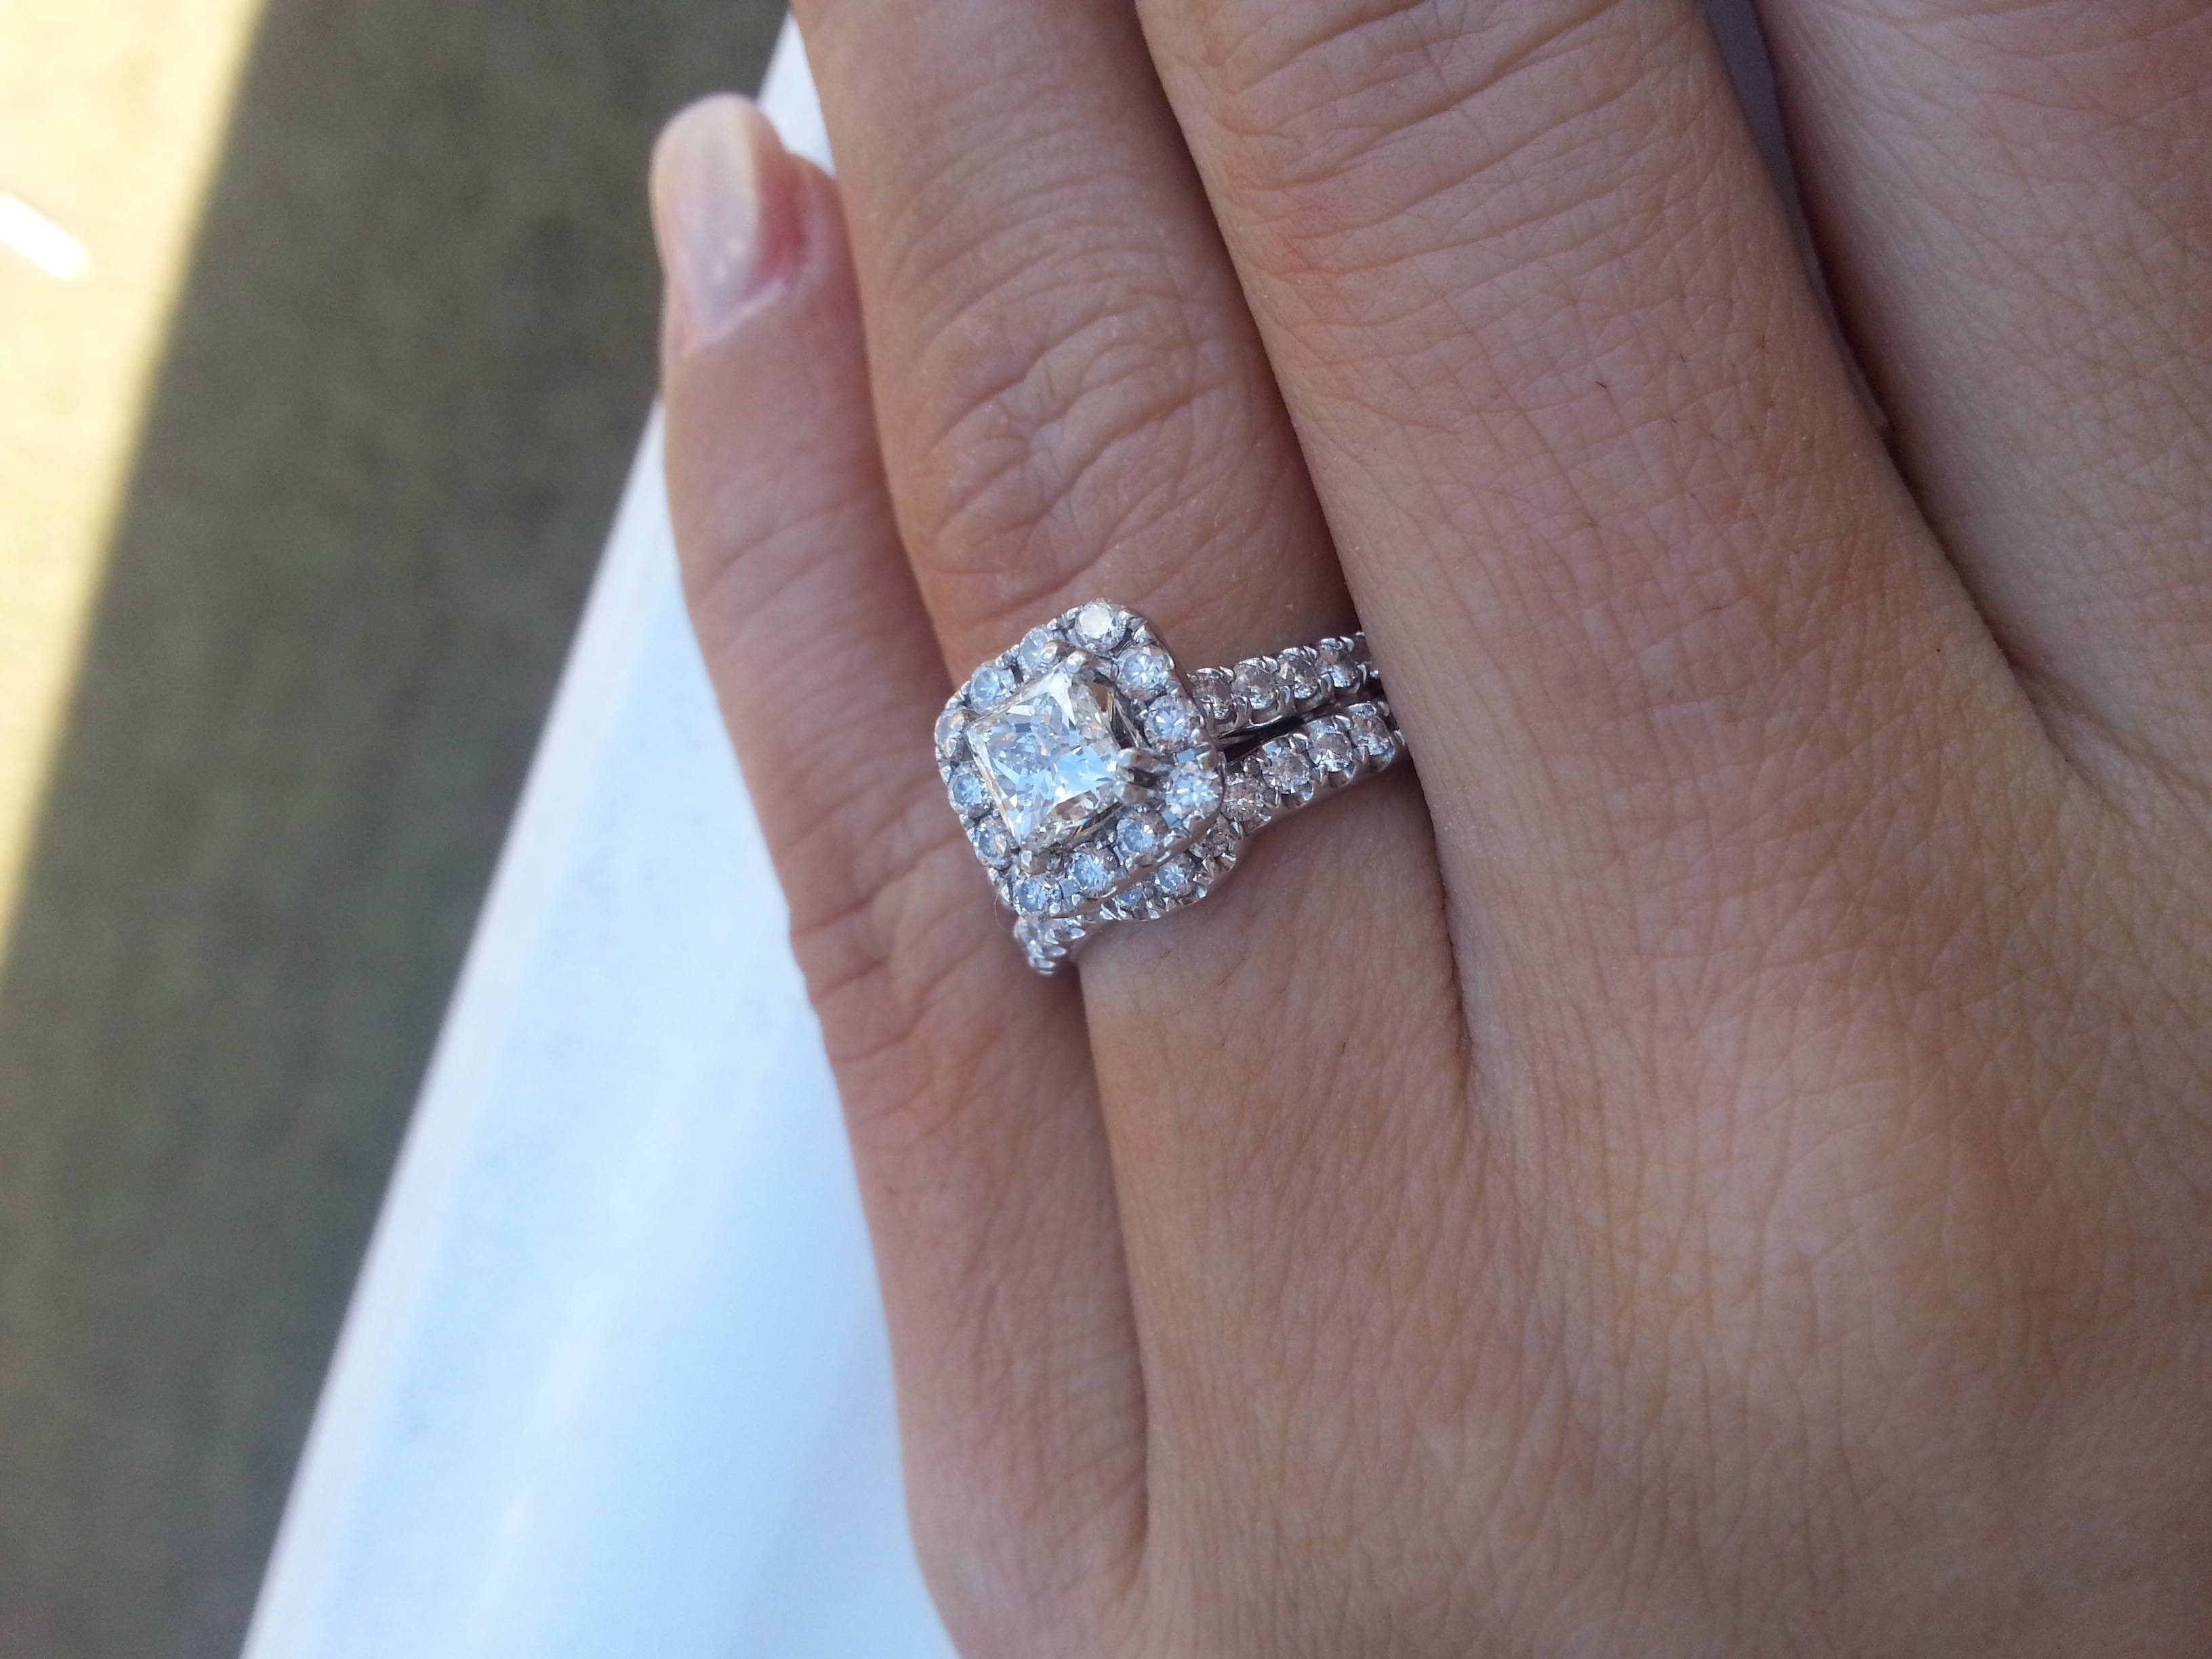 Okay To Mix Princess Cut E Ring With A Round Cut Diamond Wedding Pertaining To Wedding Band To Go With Princess Cut Engagement Ring (View 8 of 15)